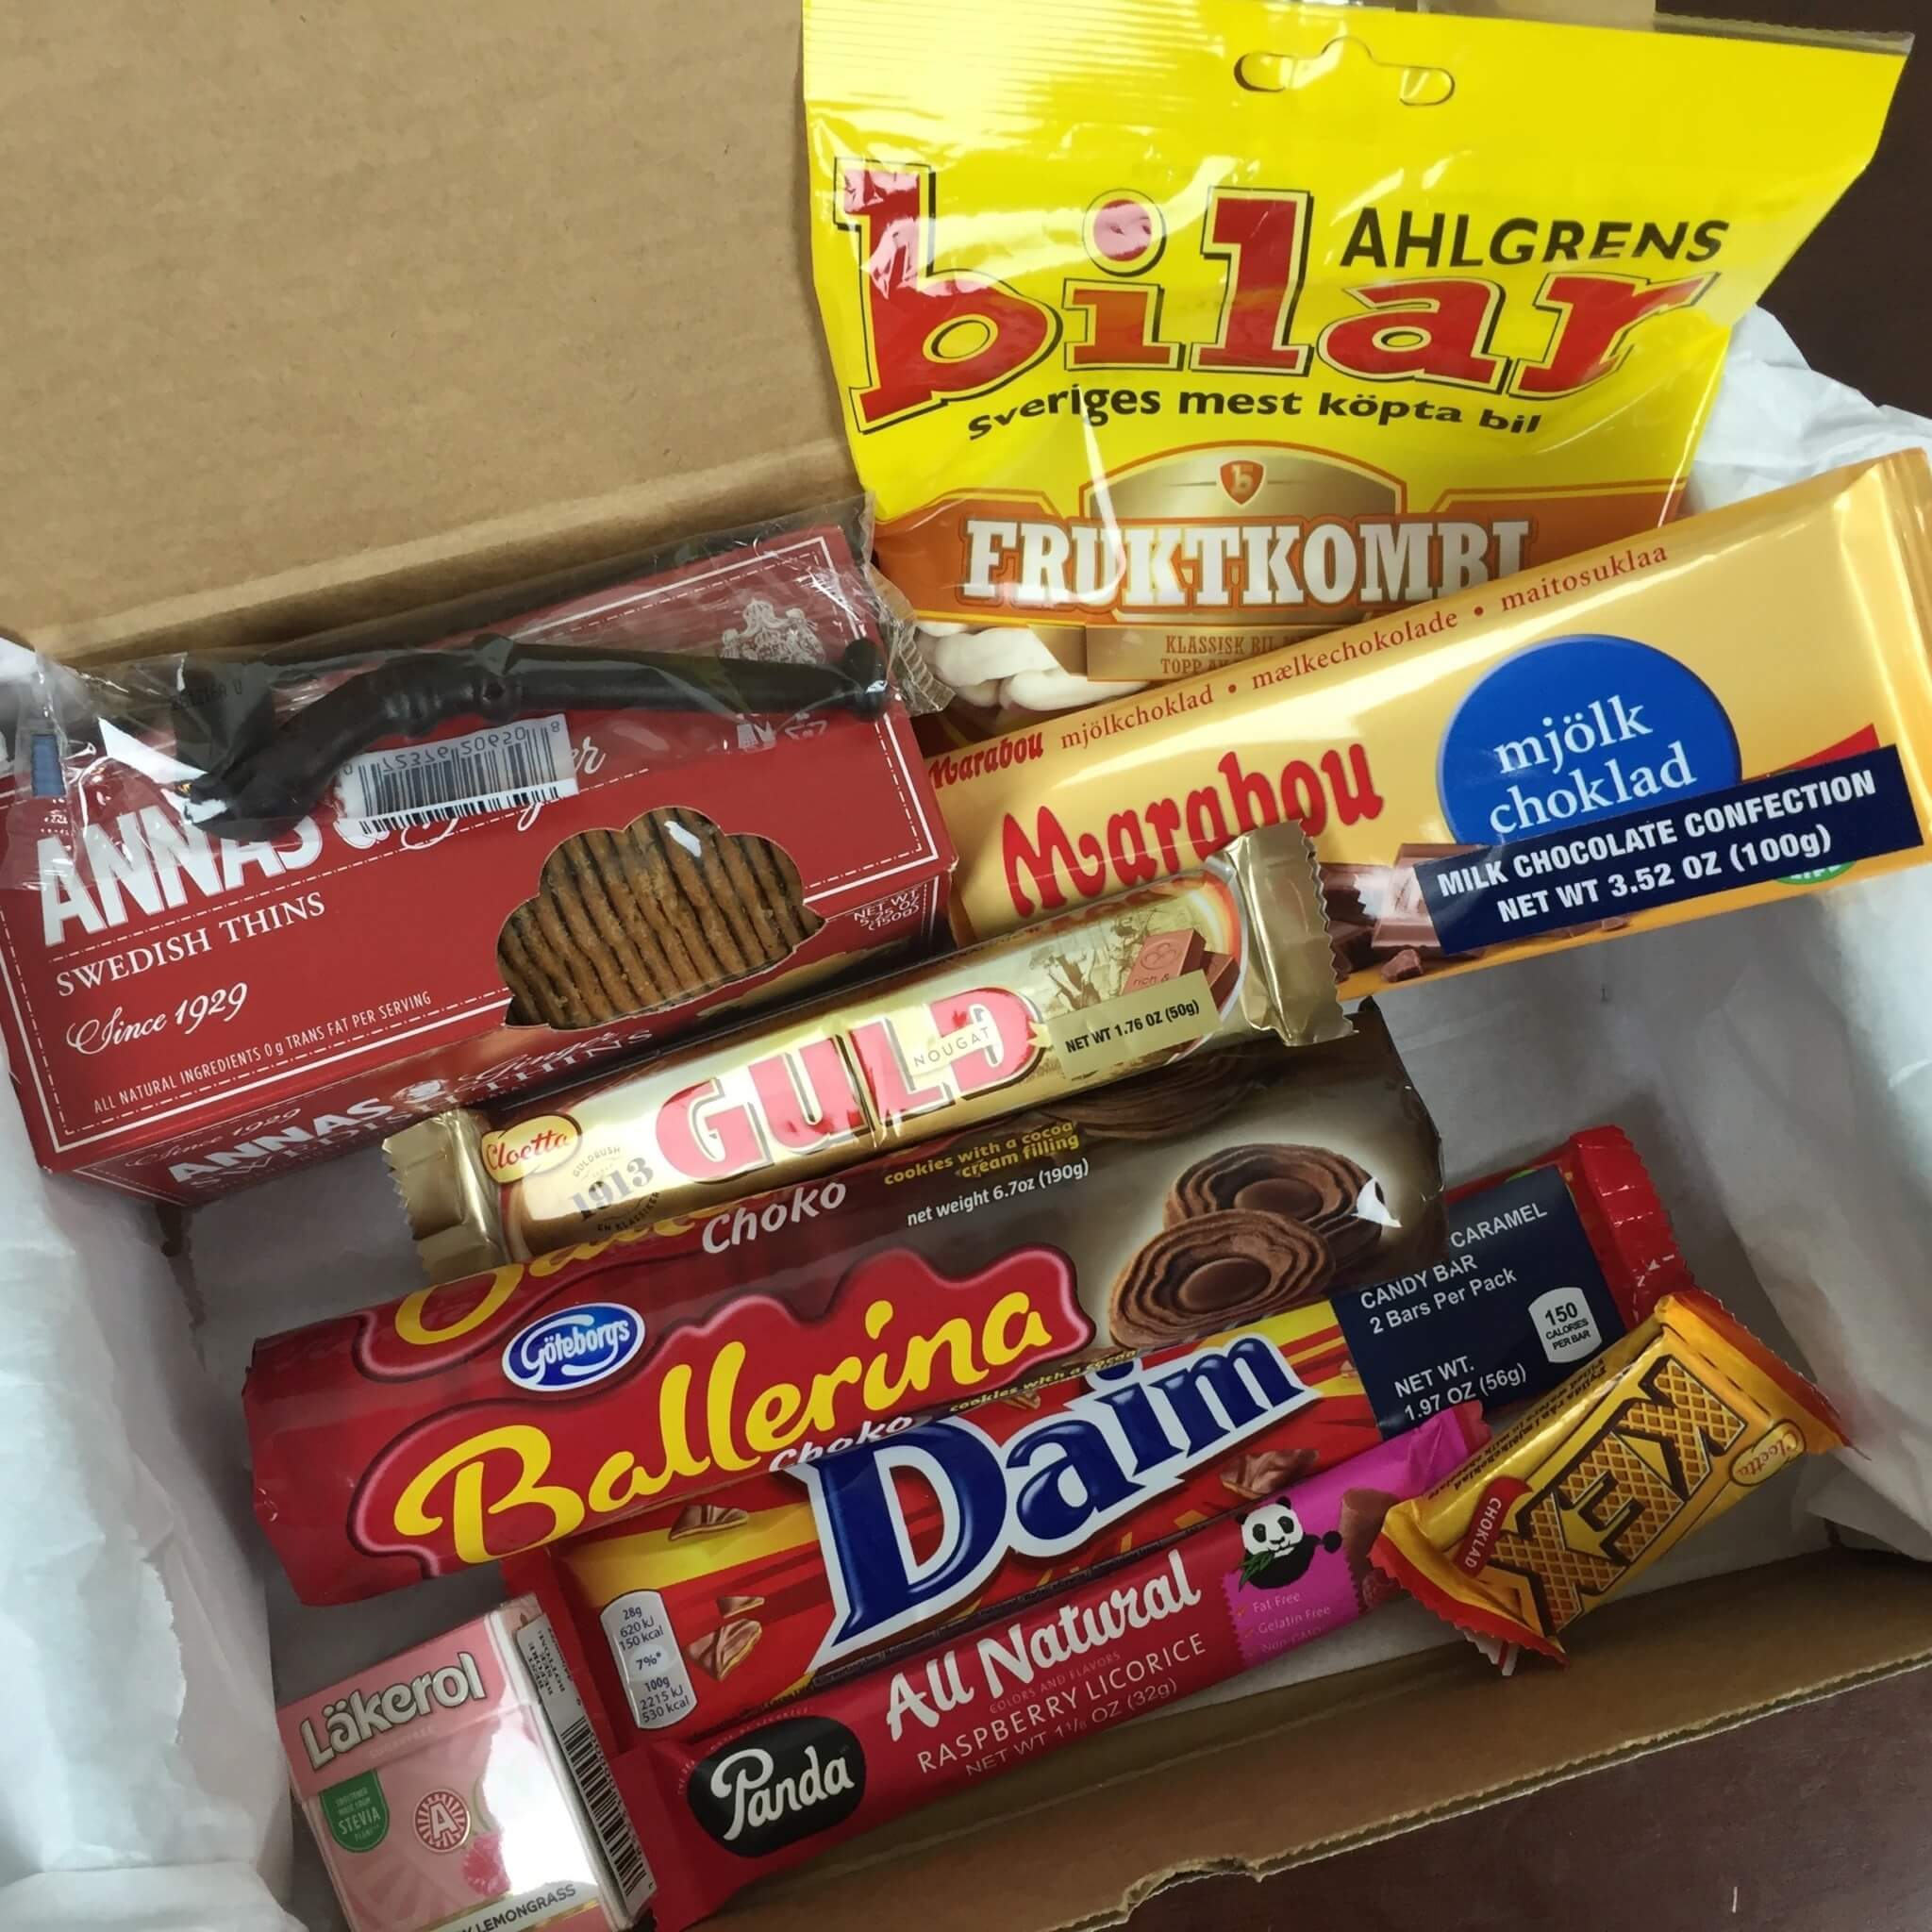 Treats Box May 2016 Review & Coupon – Sweden!